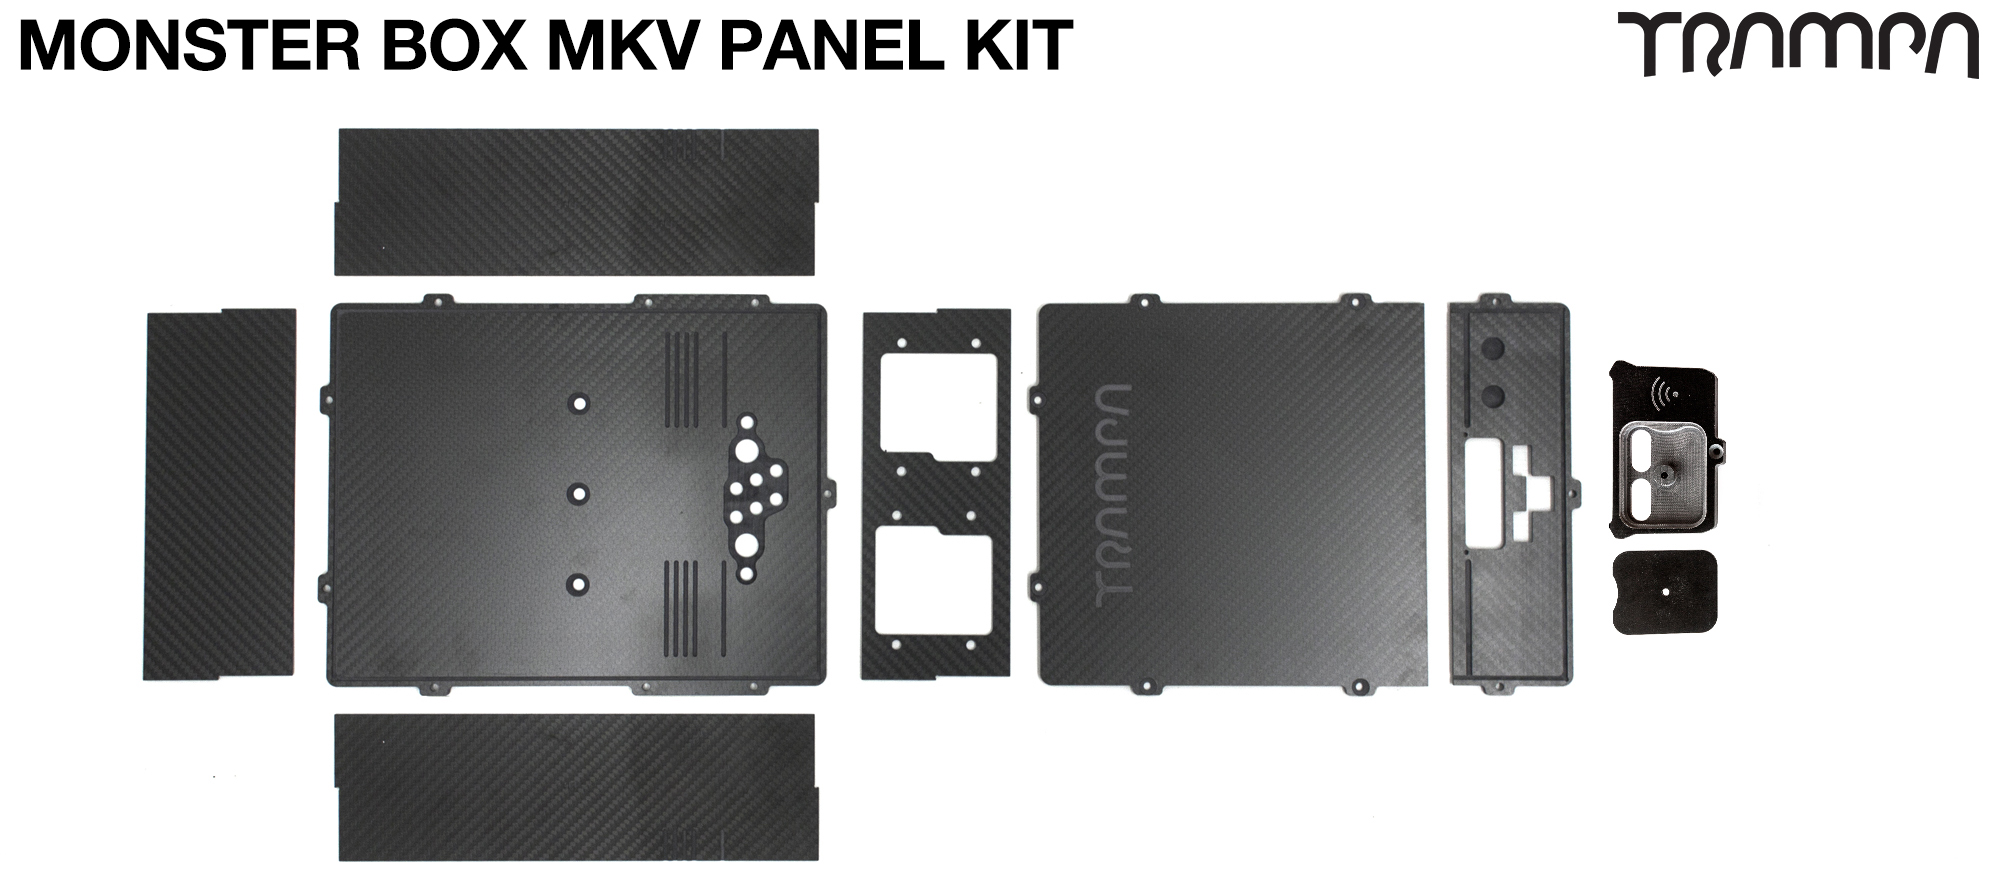 CLASSIC MONSTER Box MkV Complete Panel Kit with internal chamber for TWIN VESC & Inspection pit for Balance cables & XT60 Charge Cable